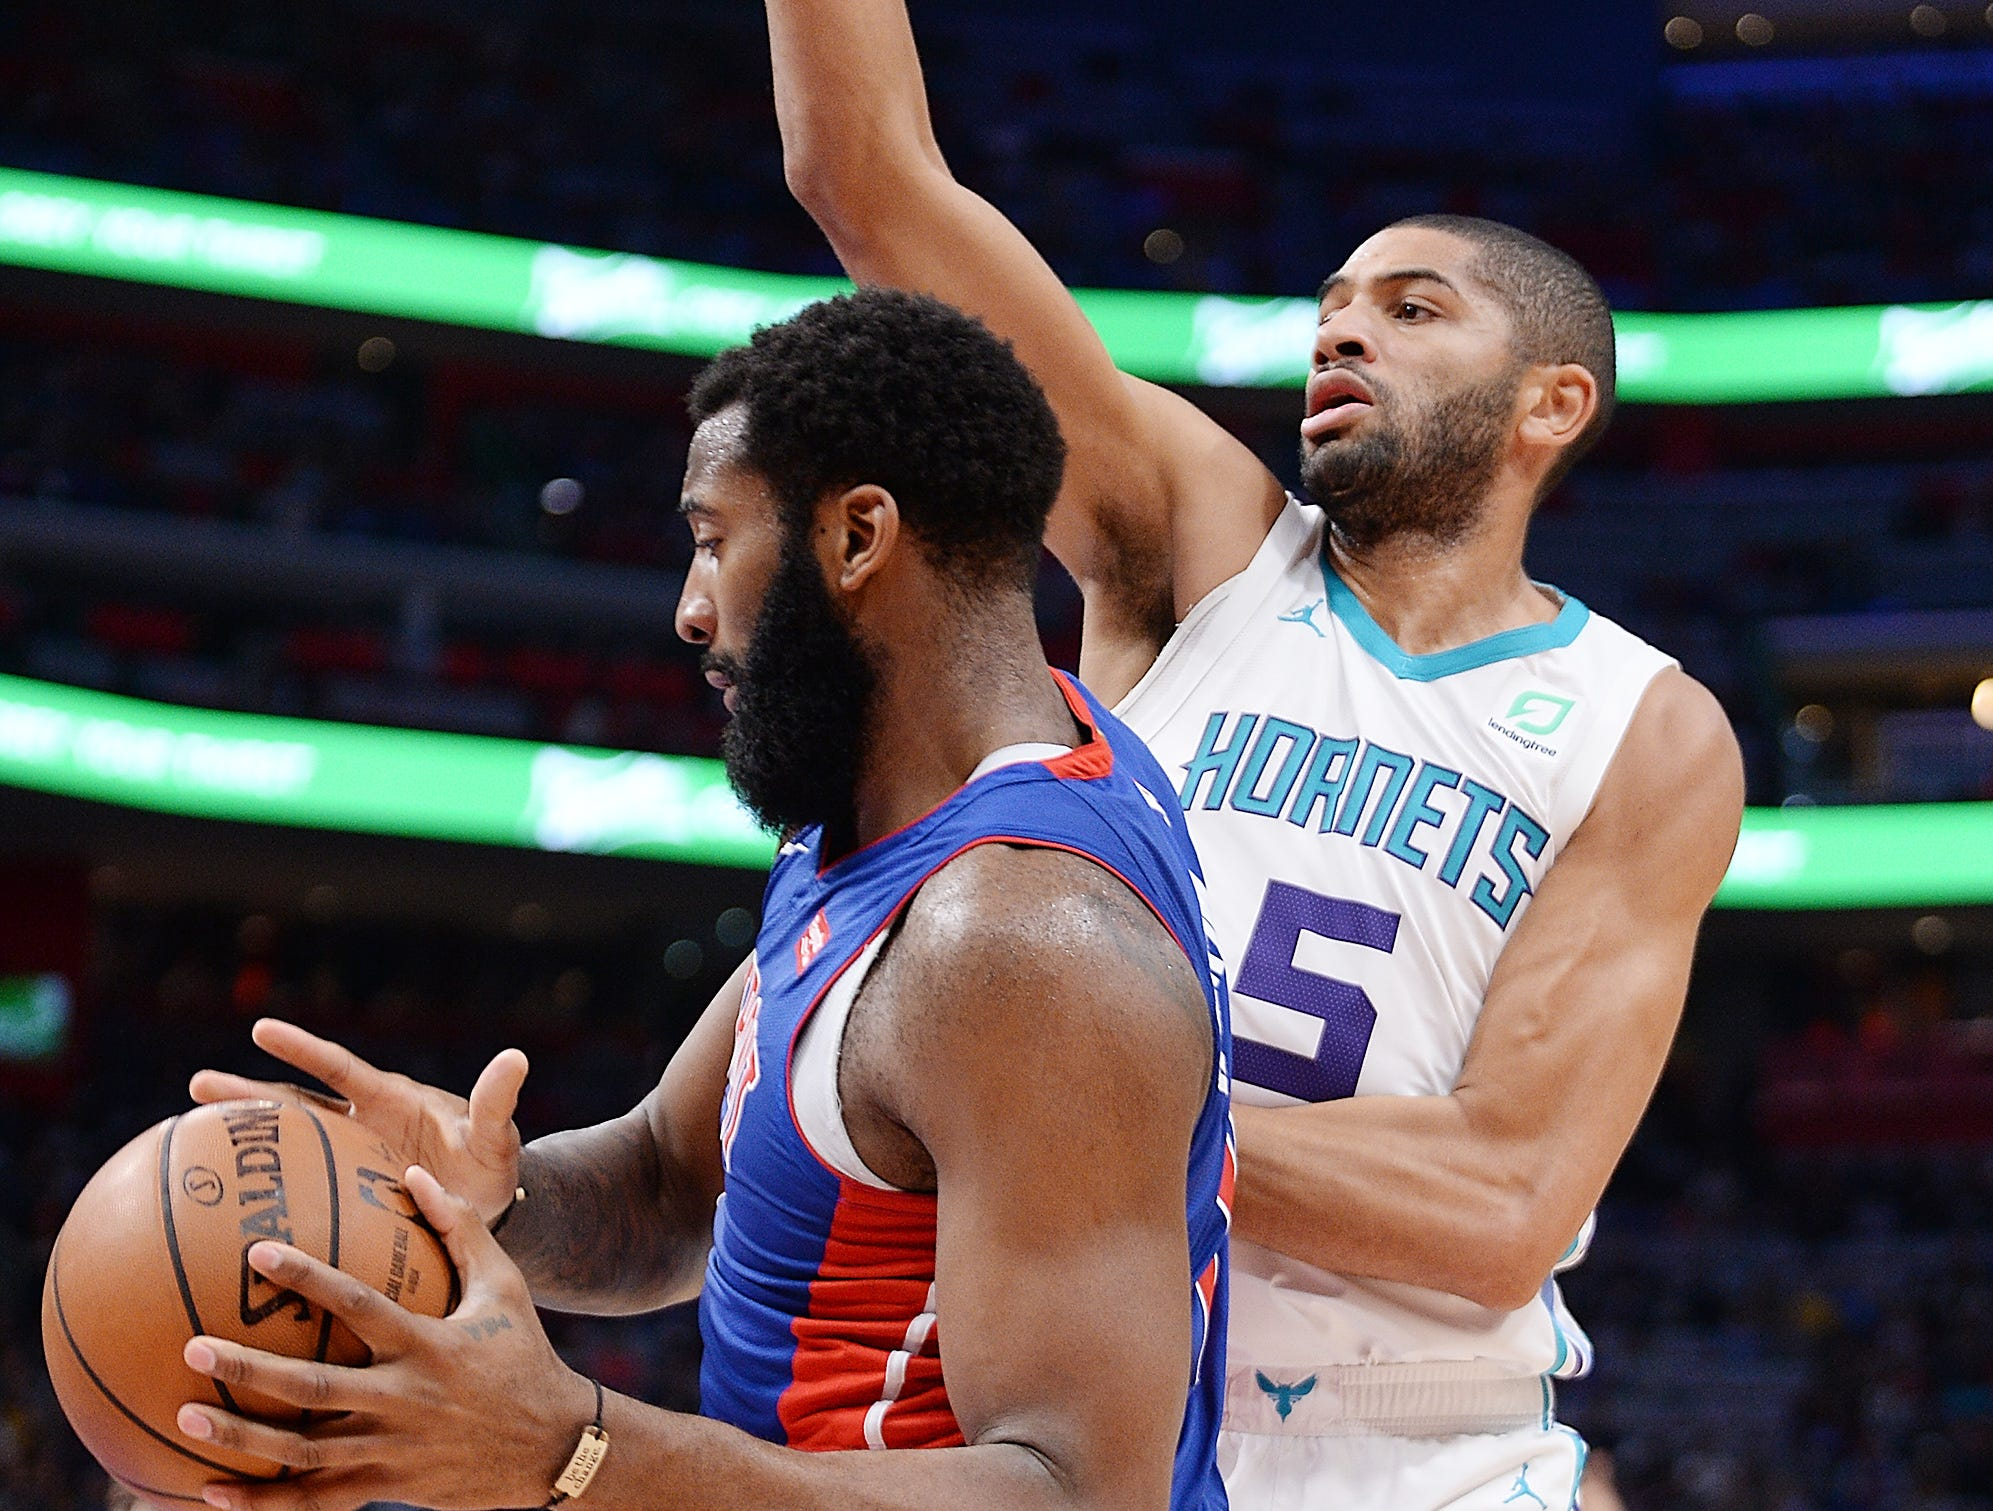 Pistons' Andre Drummond drives around Hornets' Nicolas Batum in the first quarter.